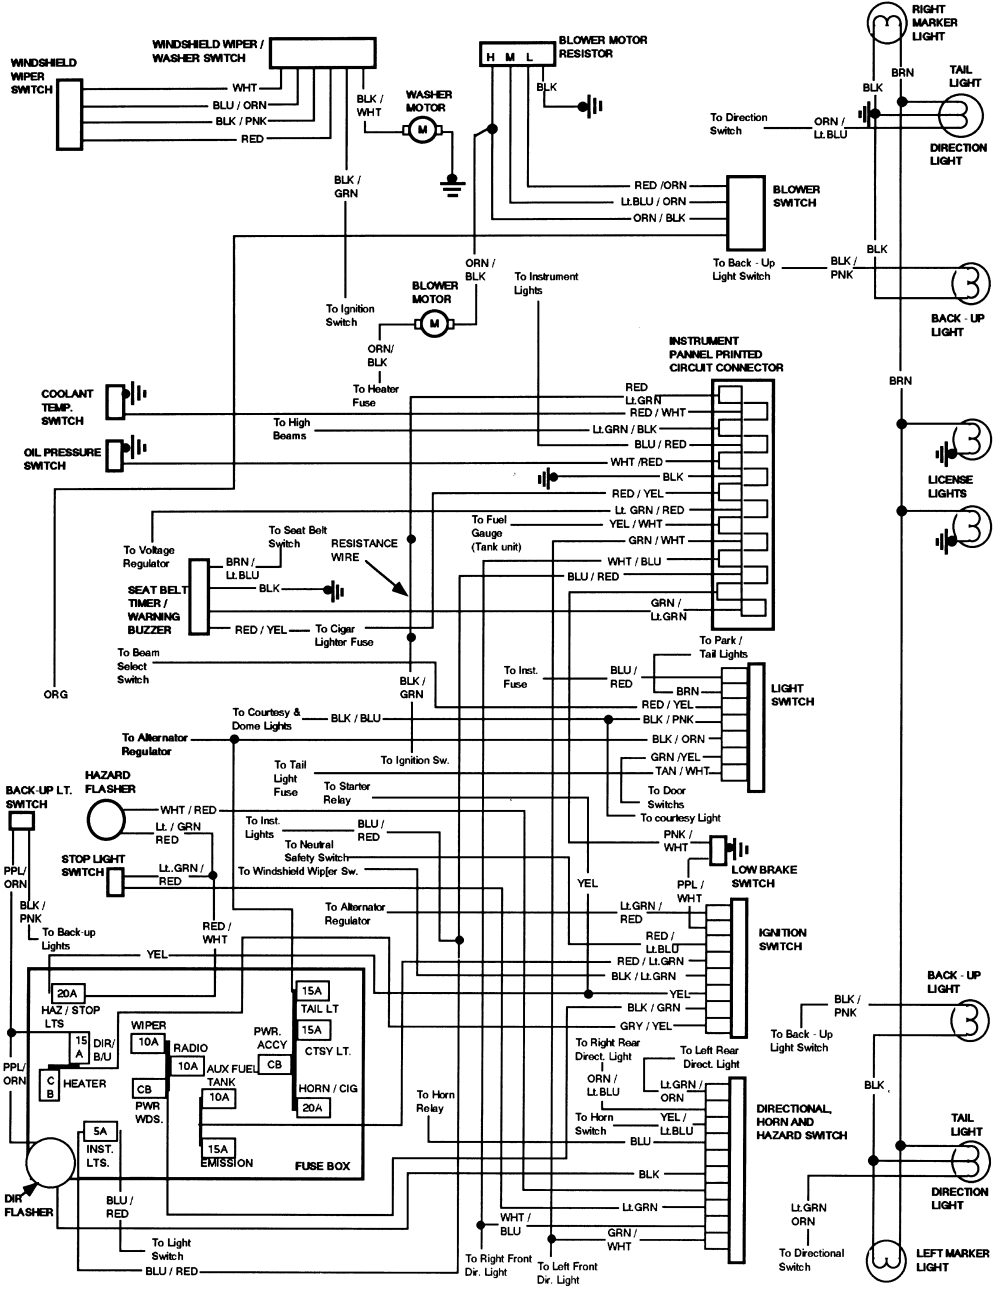 [DIAGRAM_38IS]  Ford F150 Wiring Schematic - Meyer Plow Wiring Diagram 2003 Silverado for  Wiring Diagram Schematics | 1990 Ford F 150 Wiring Harness Diagram |  | Wiring Diagram Schematics